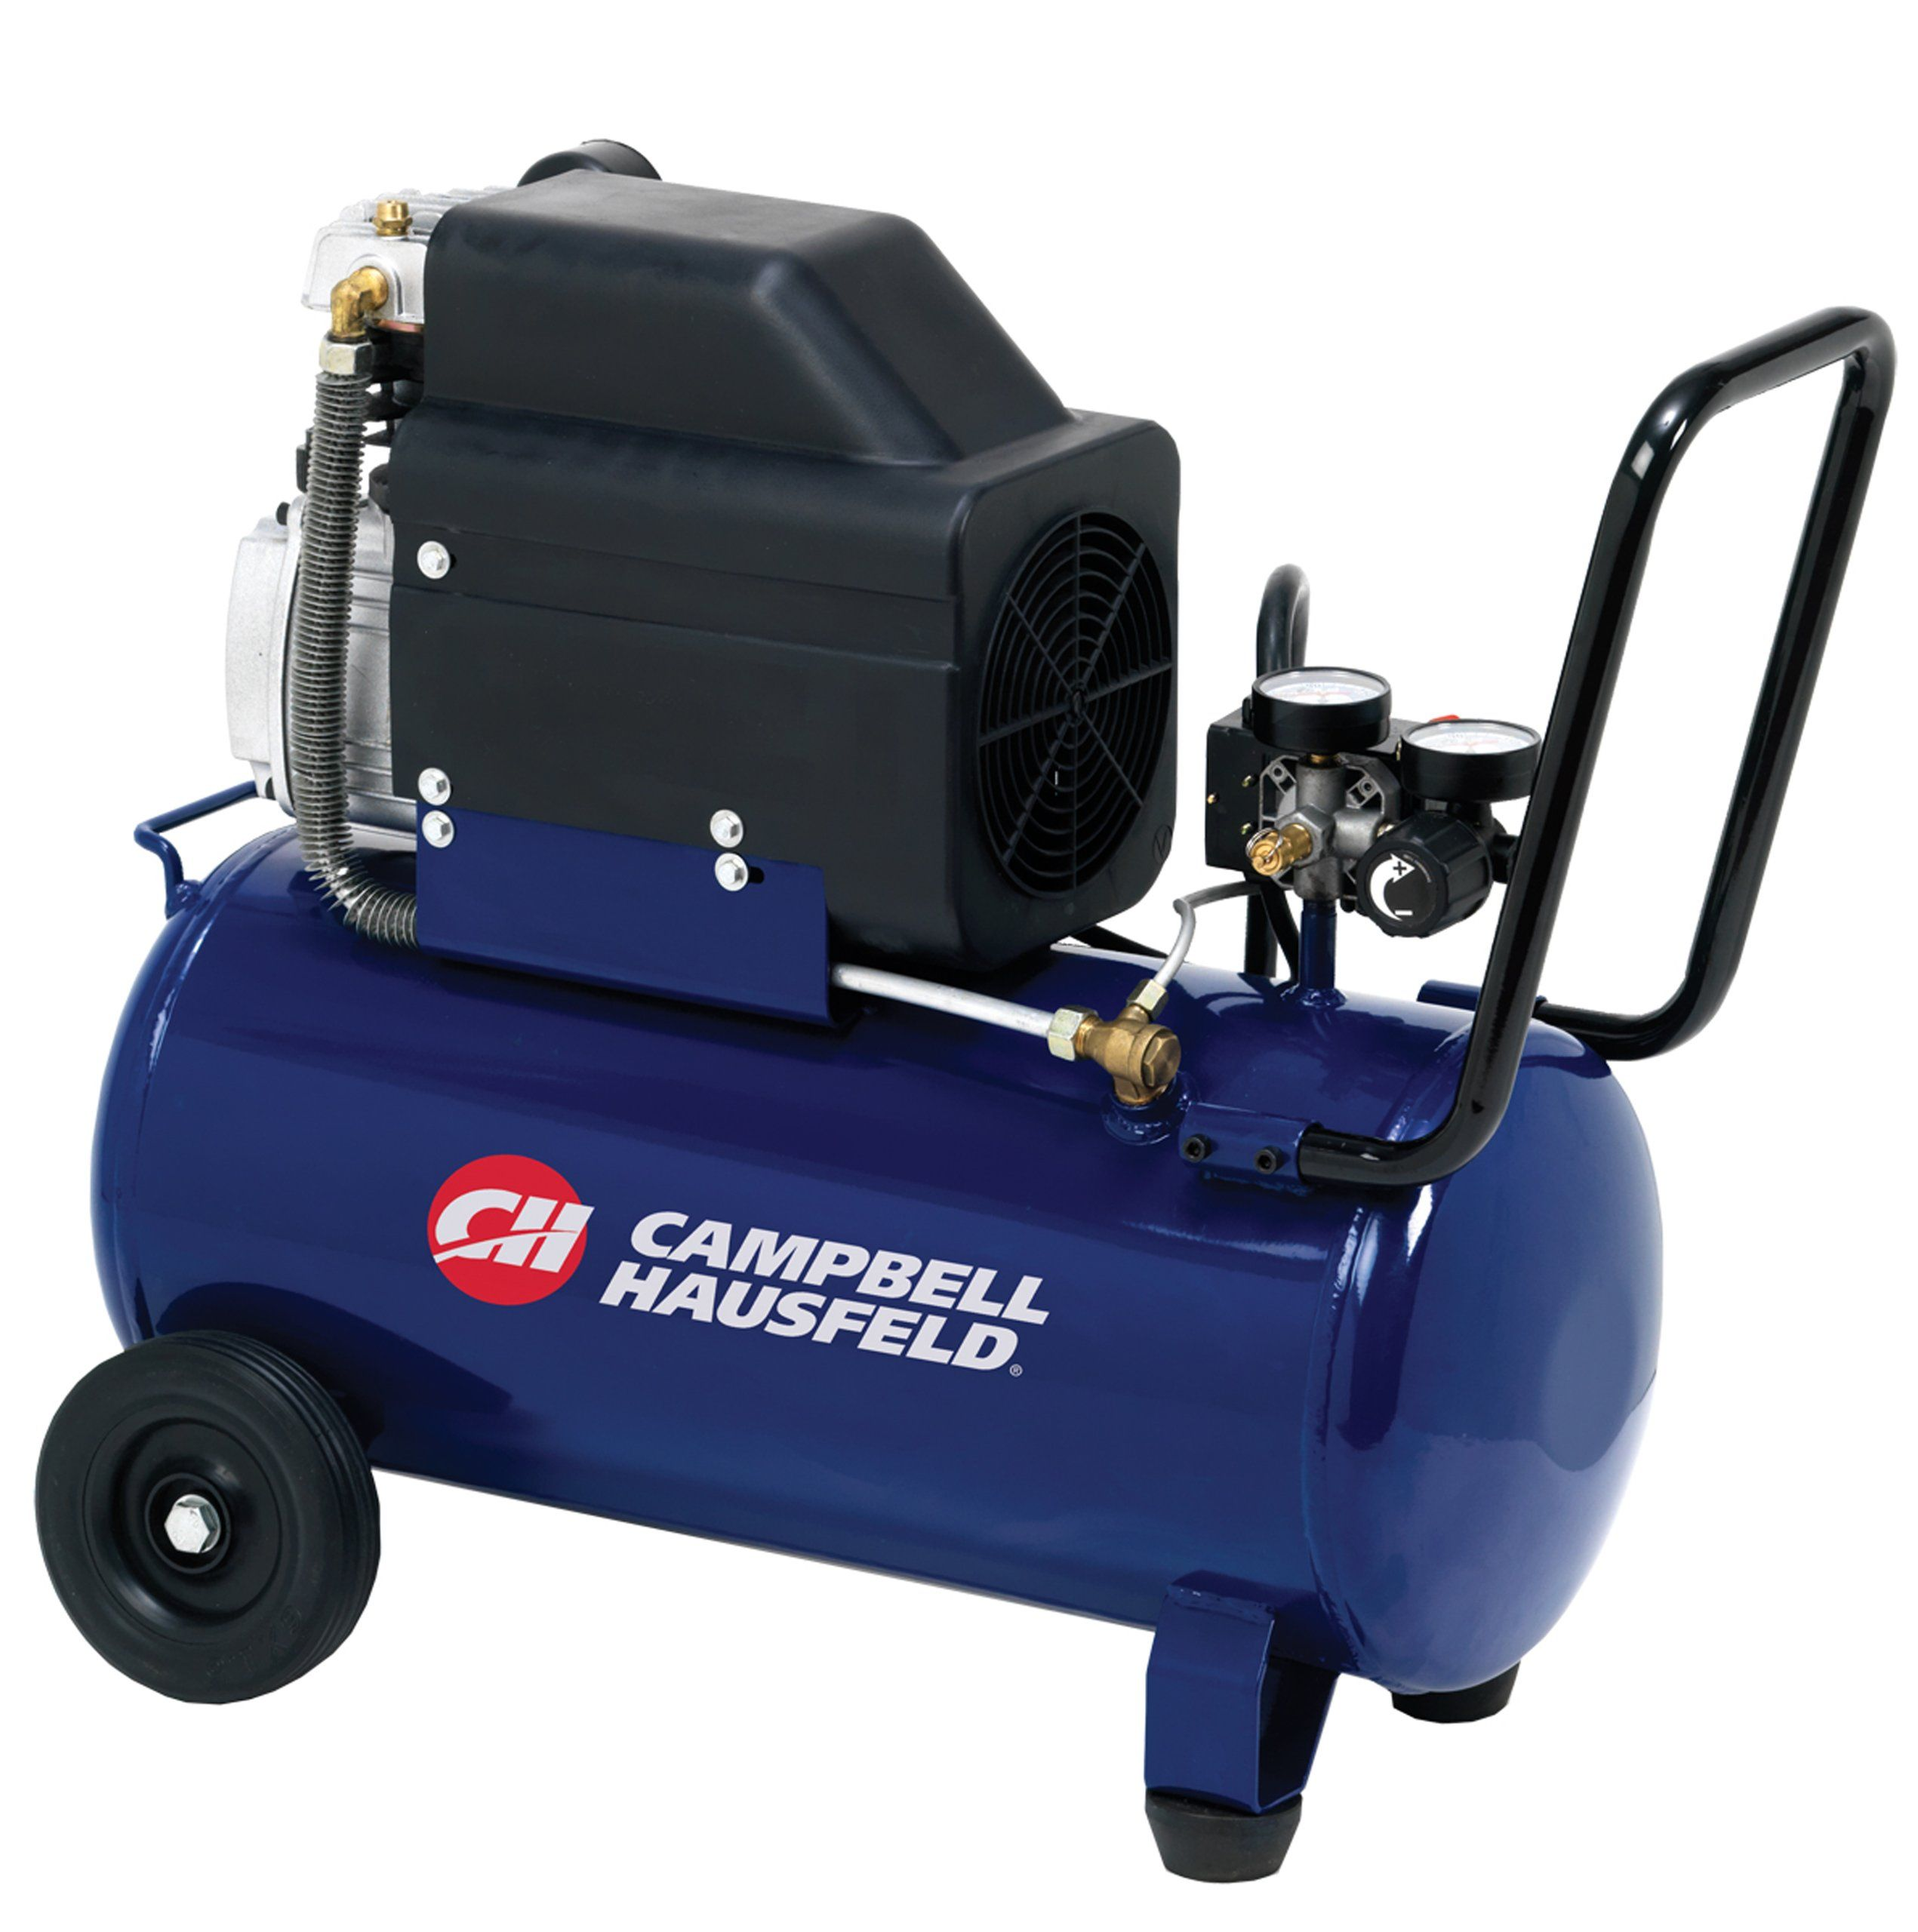 Campbell Hausfeld Hl540100av 8 Gallon Air Compressor To Use With Critter Sprayer Best Portable Air Compressor Quiet Air Compressor Air Compressor